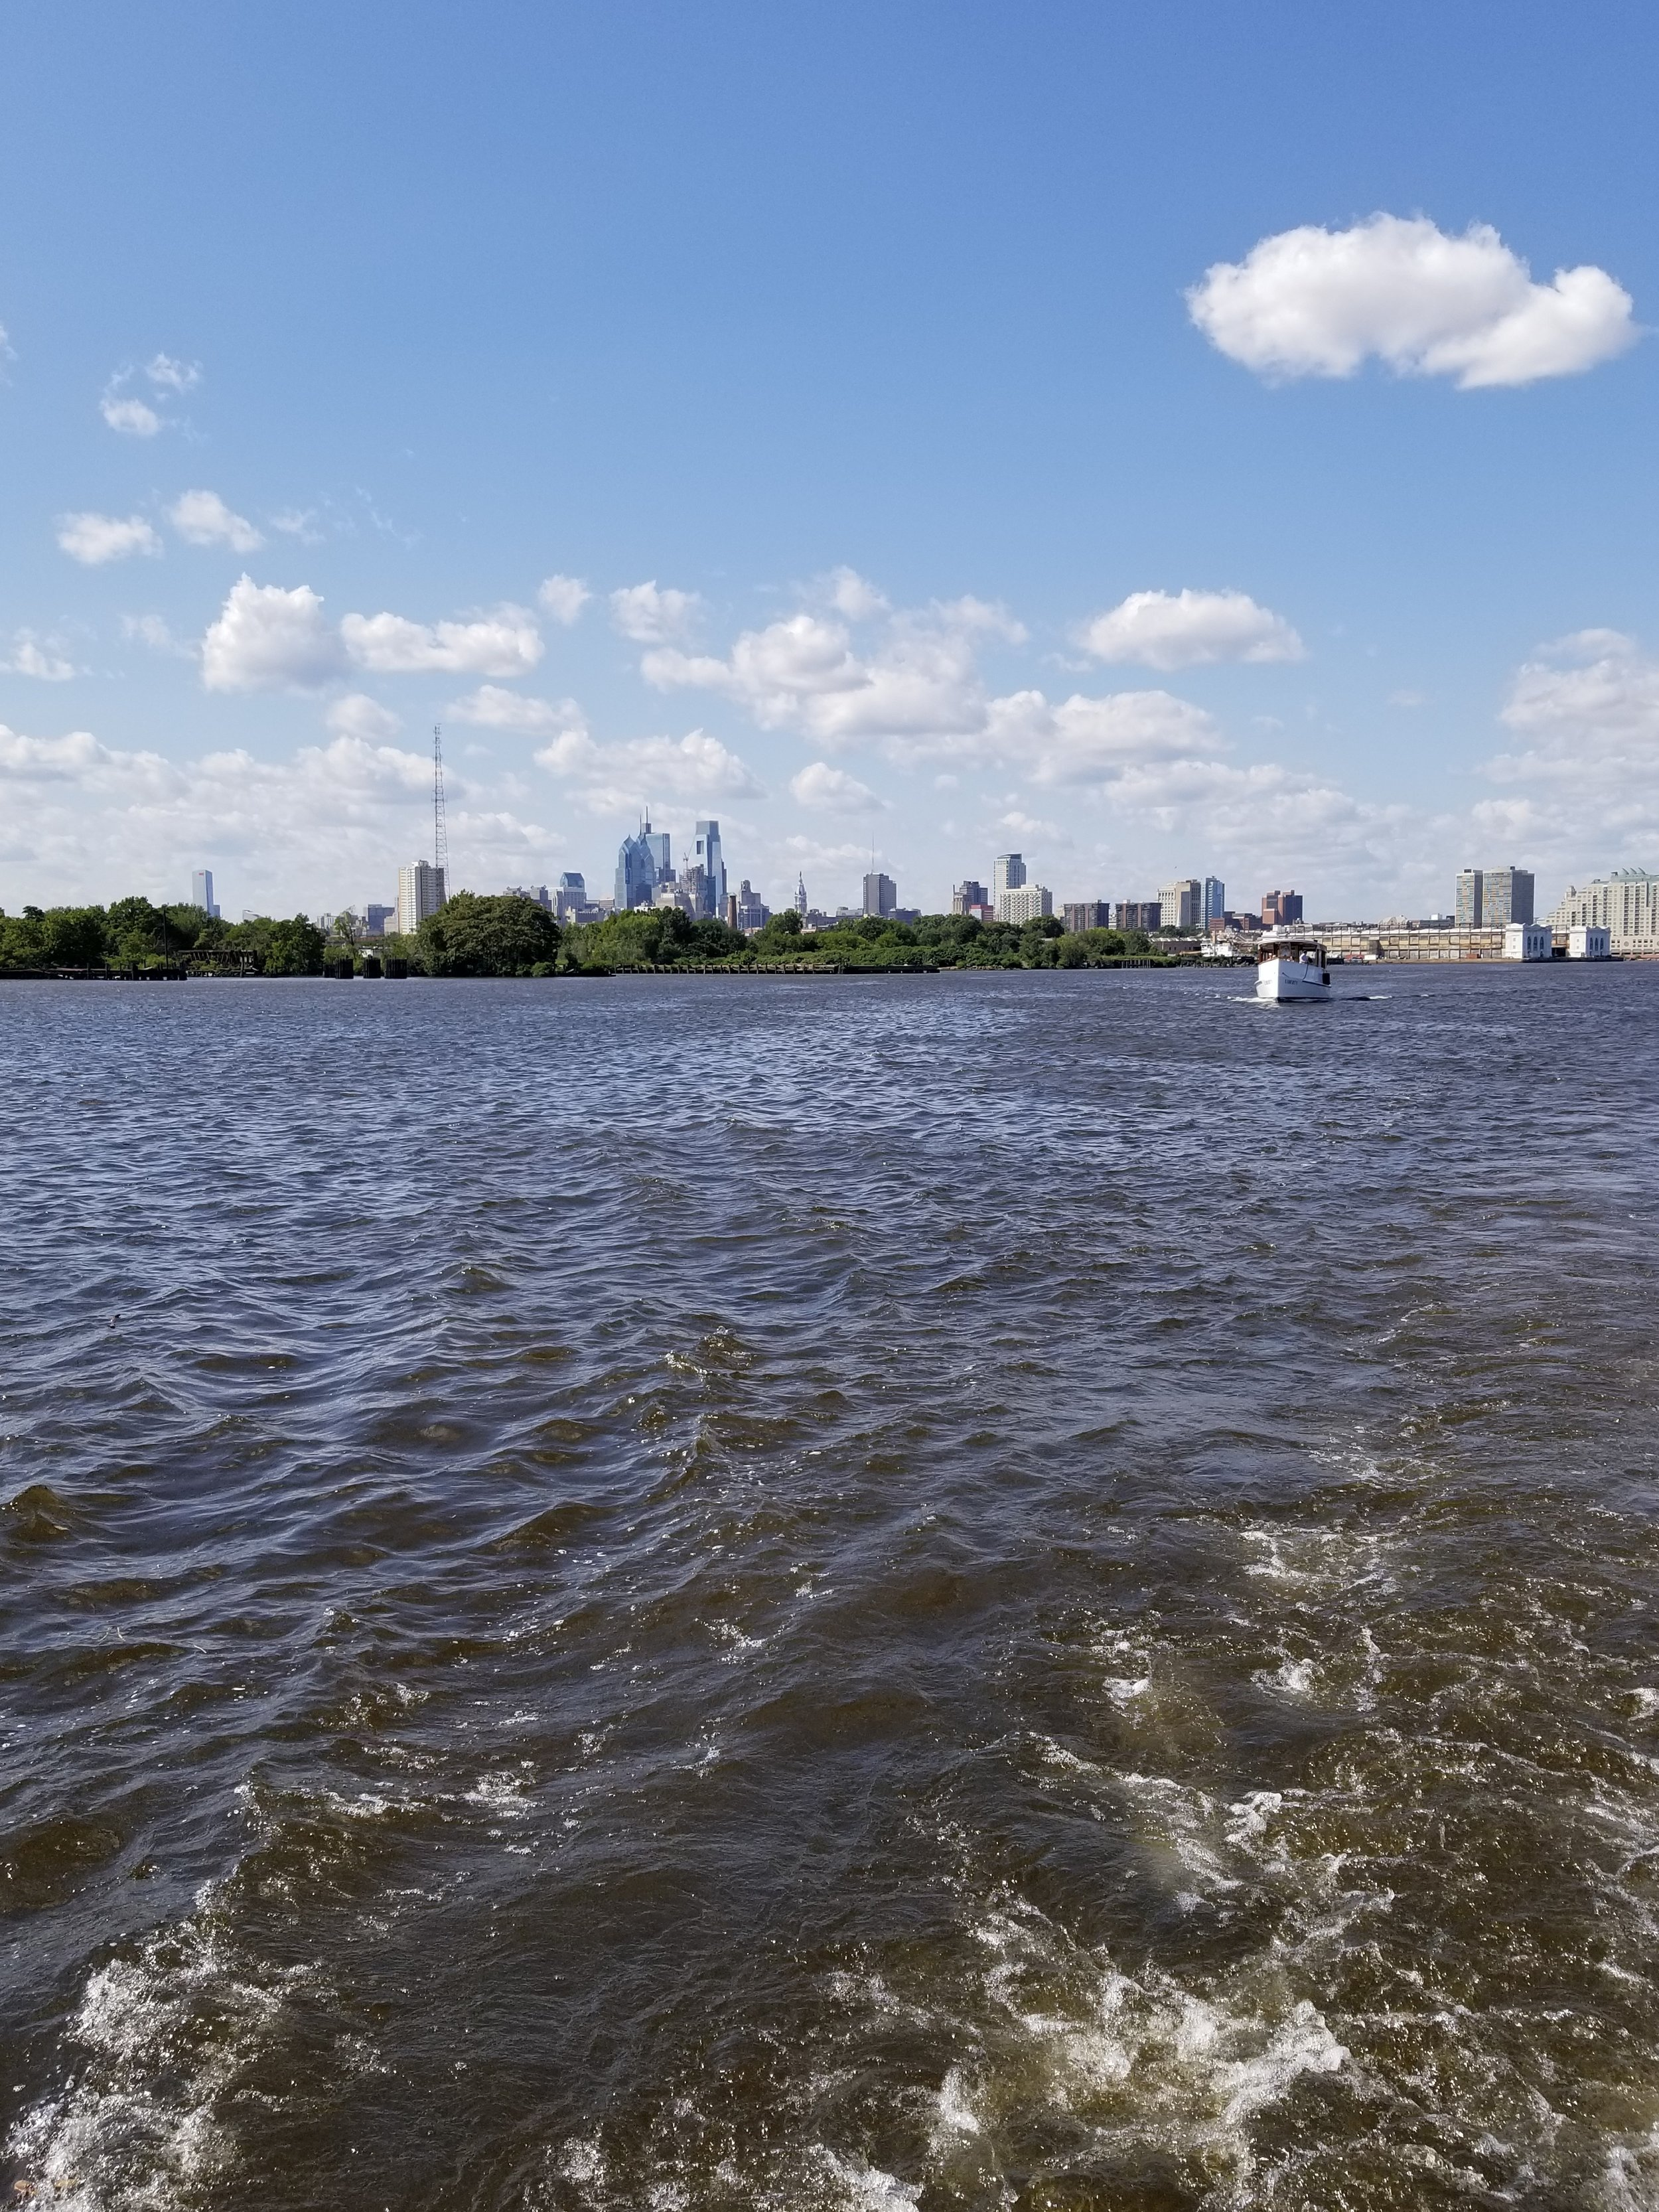 Sailing down the Delaware River with Philadelphia's beautiful skyline slowly fading